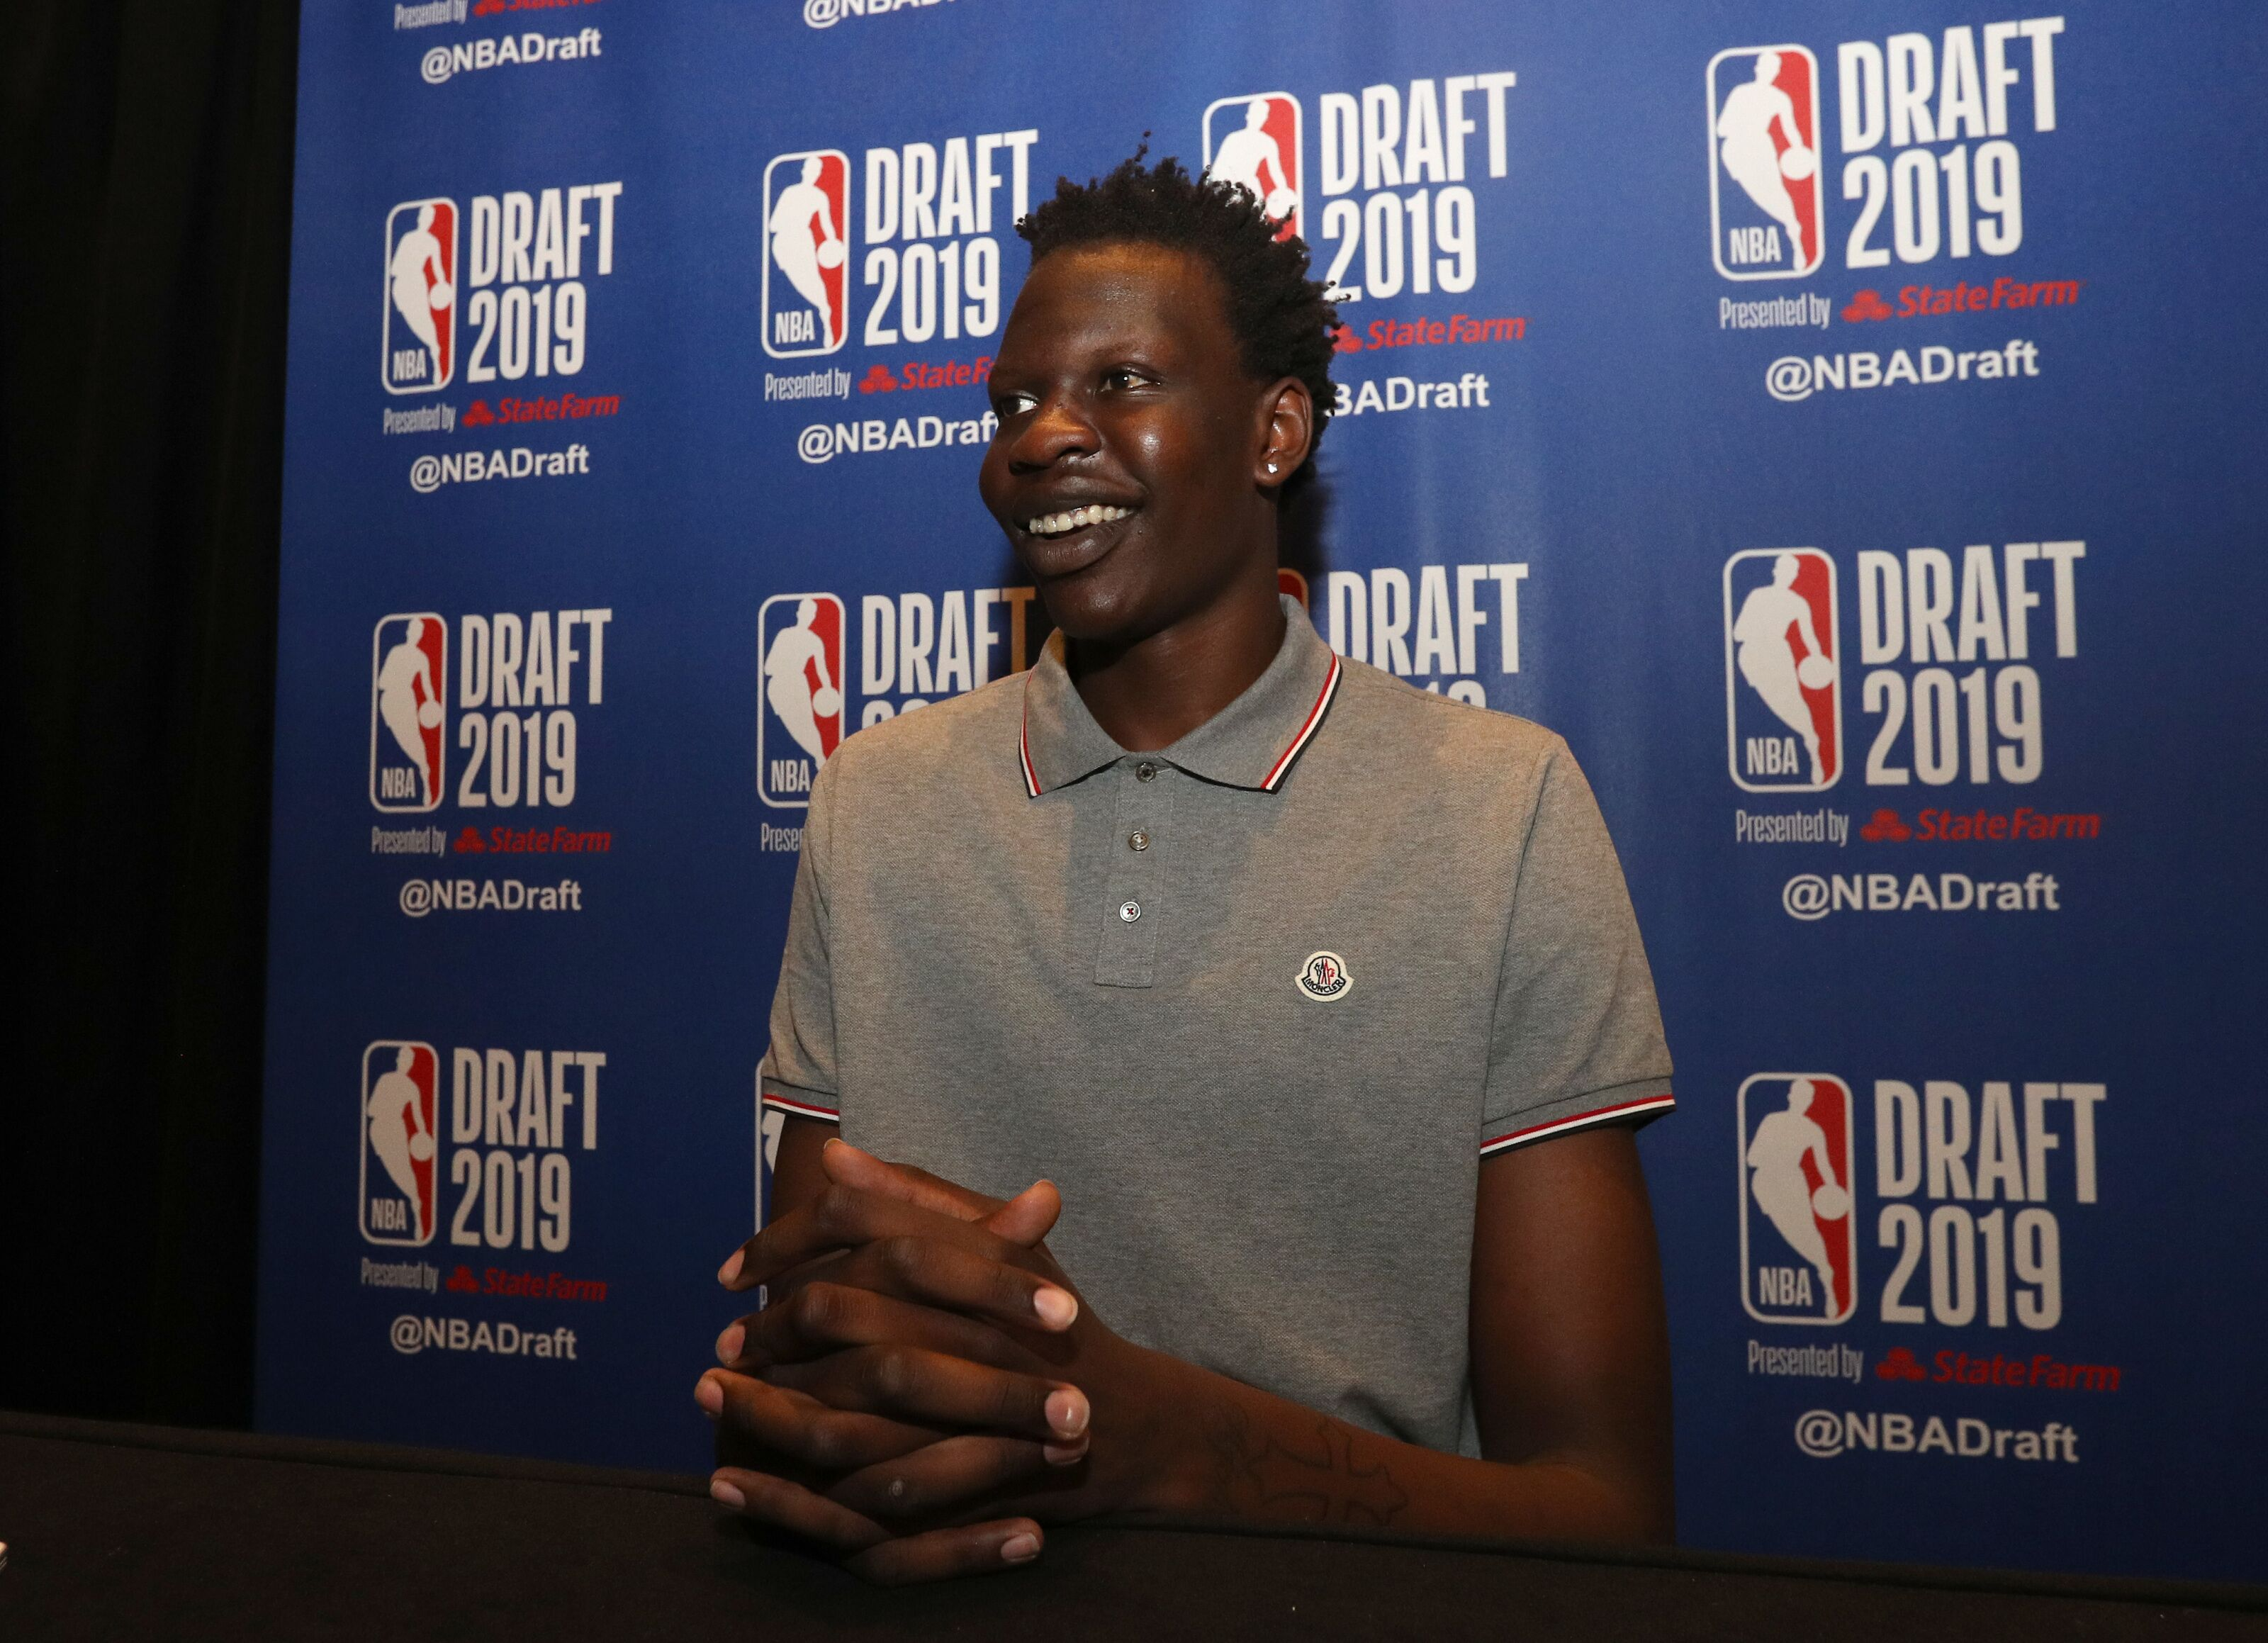 2019 NBA Draft: Bol Bol Lands With Denver, Two Ducks Go Undrafted